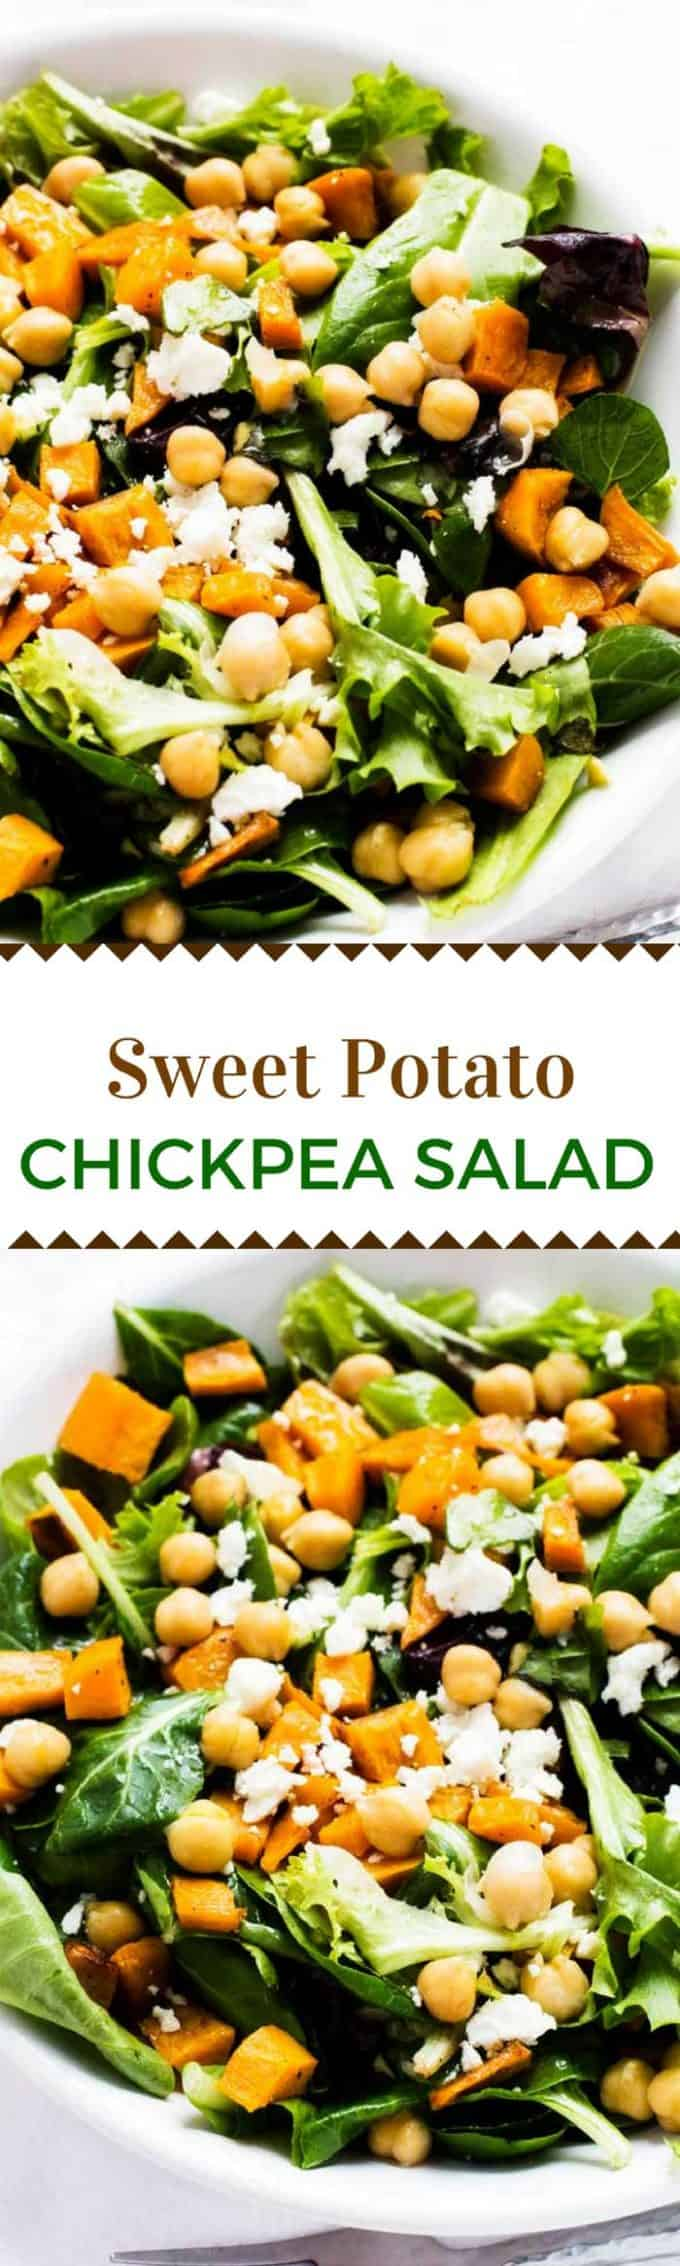 This Sweet Potato Chickpeas Salad makes a delicious healthy side dis or fabulous vegetarian main course salad.